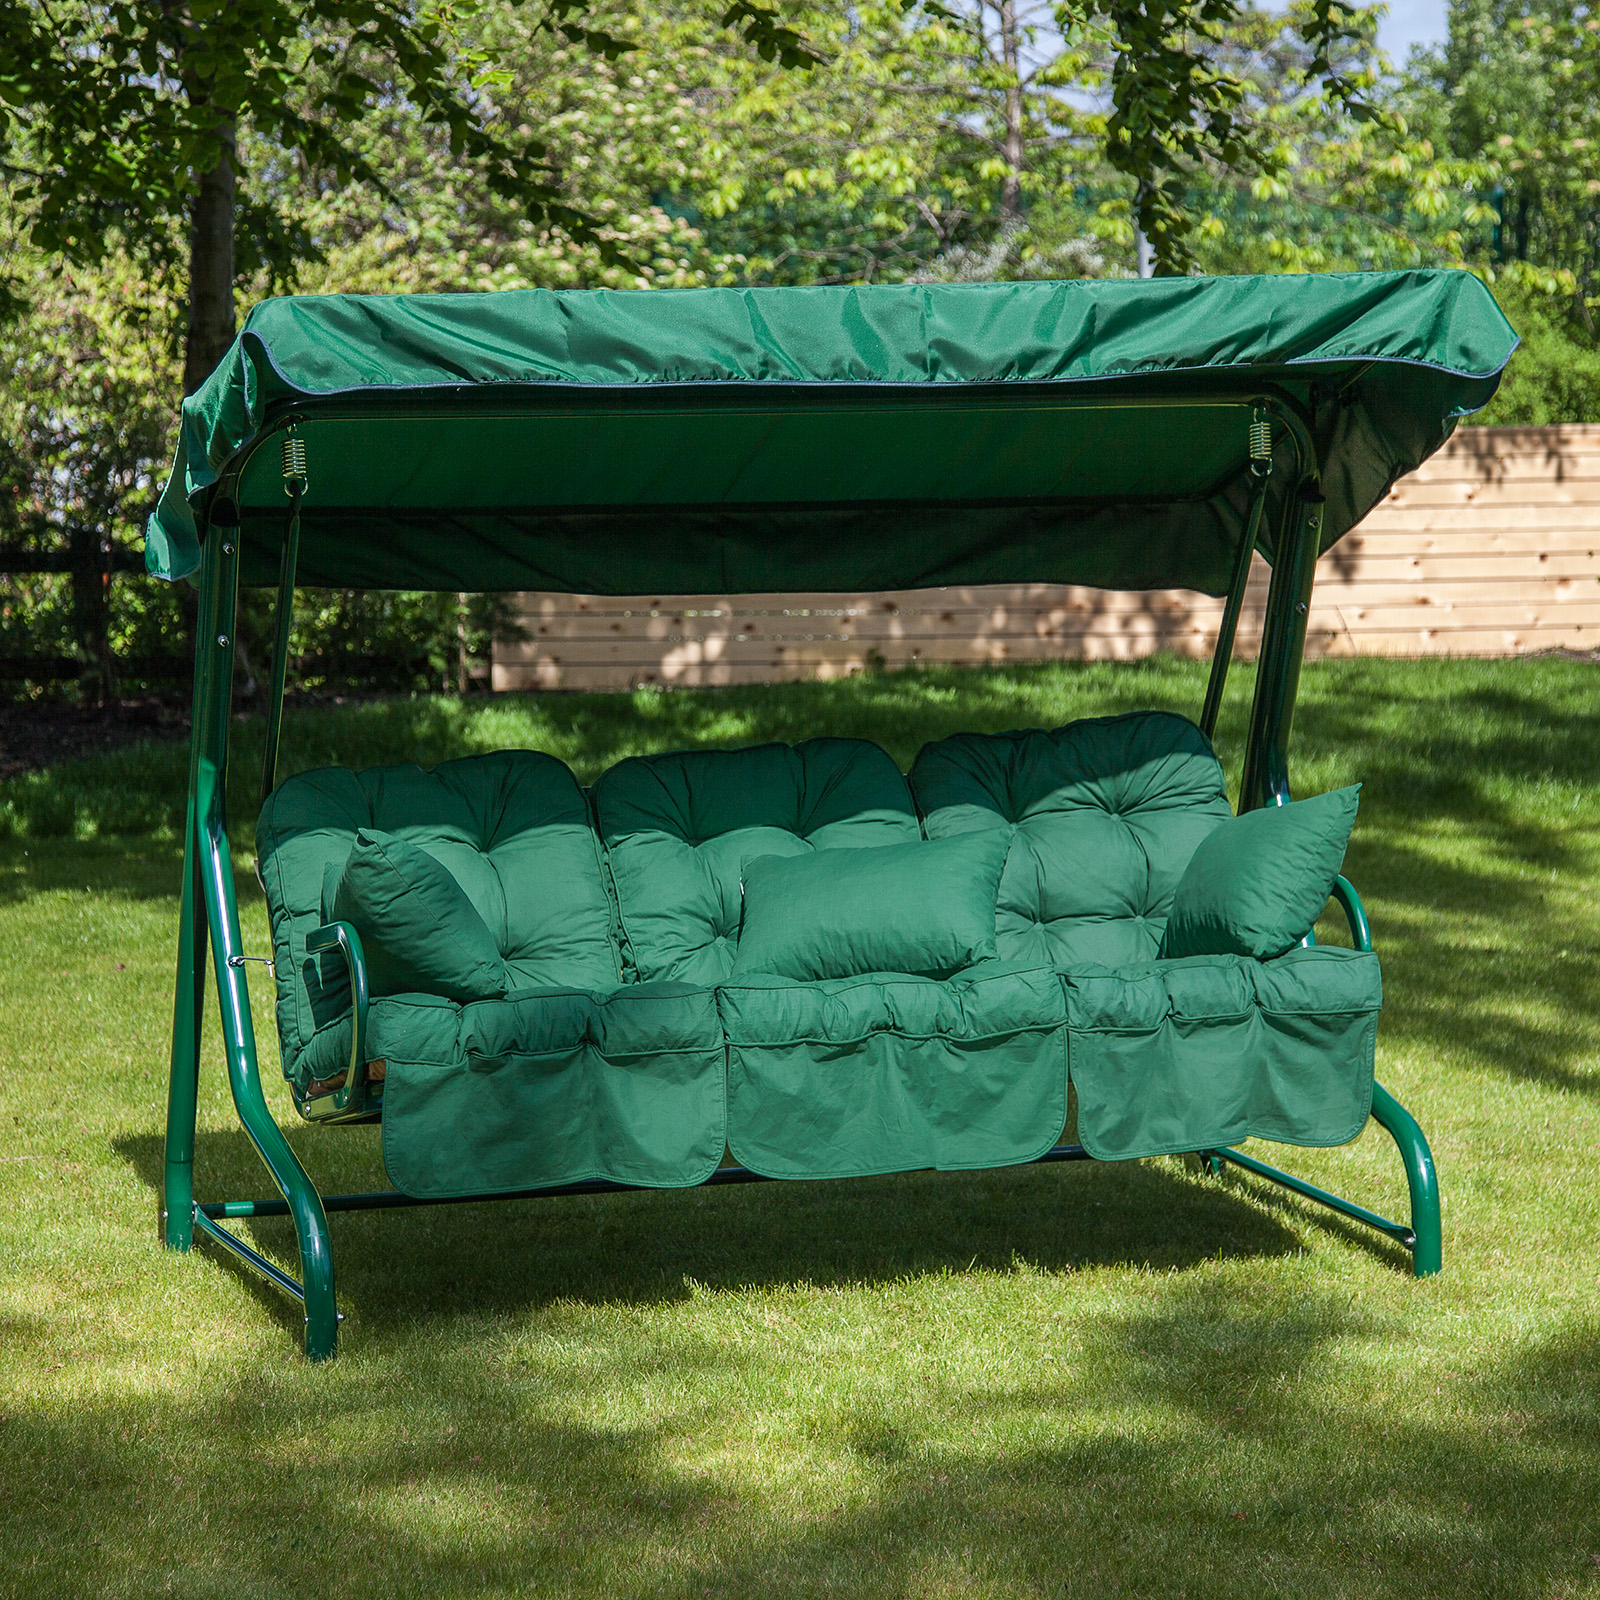 Roma 3 Seater Garden Patio Swing Seat - Green Frame with ...